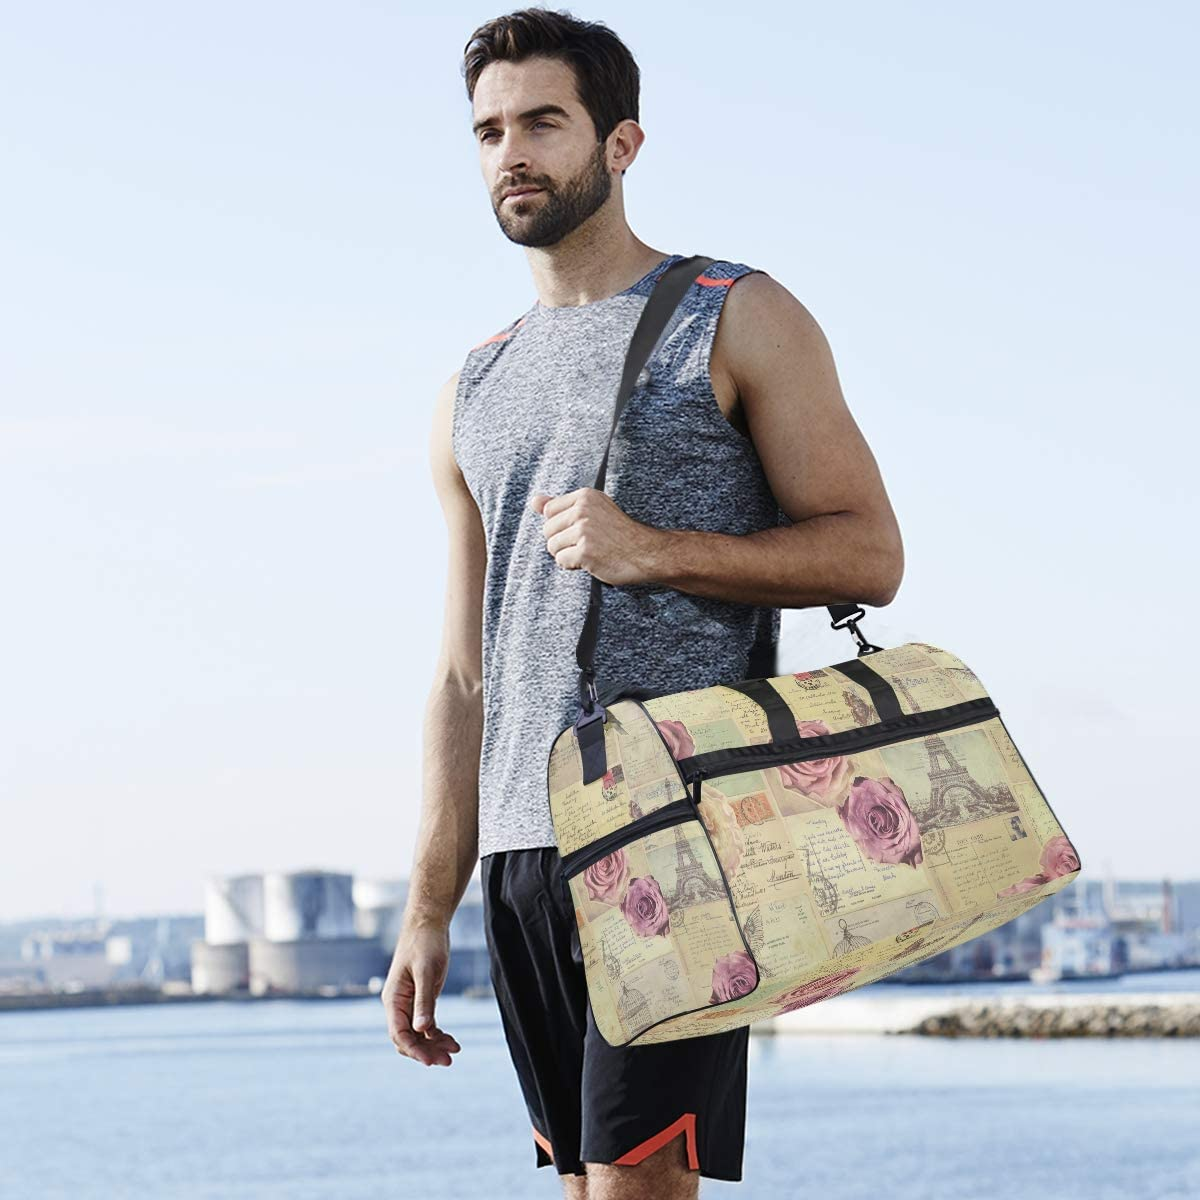 FAJRO Gym Bag Travel Duffel Express Weekender Bag Retro Rose Flower Paris Post Card Carry On Luggage with Shoe Pouch